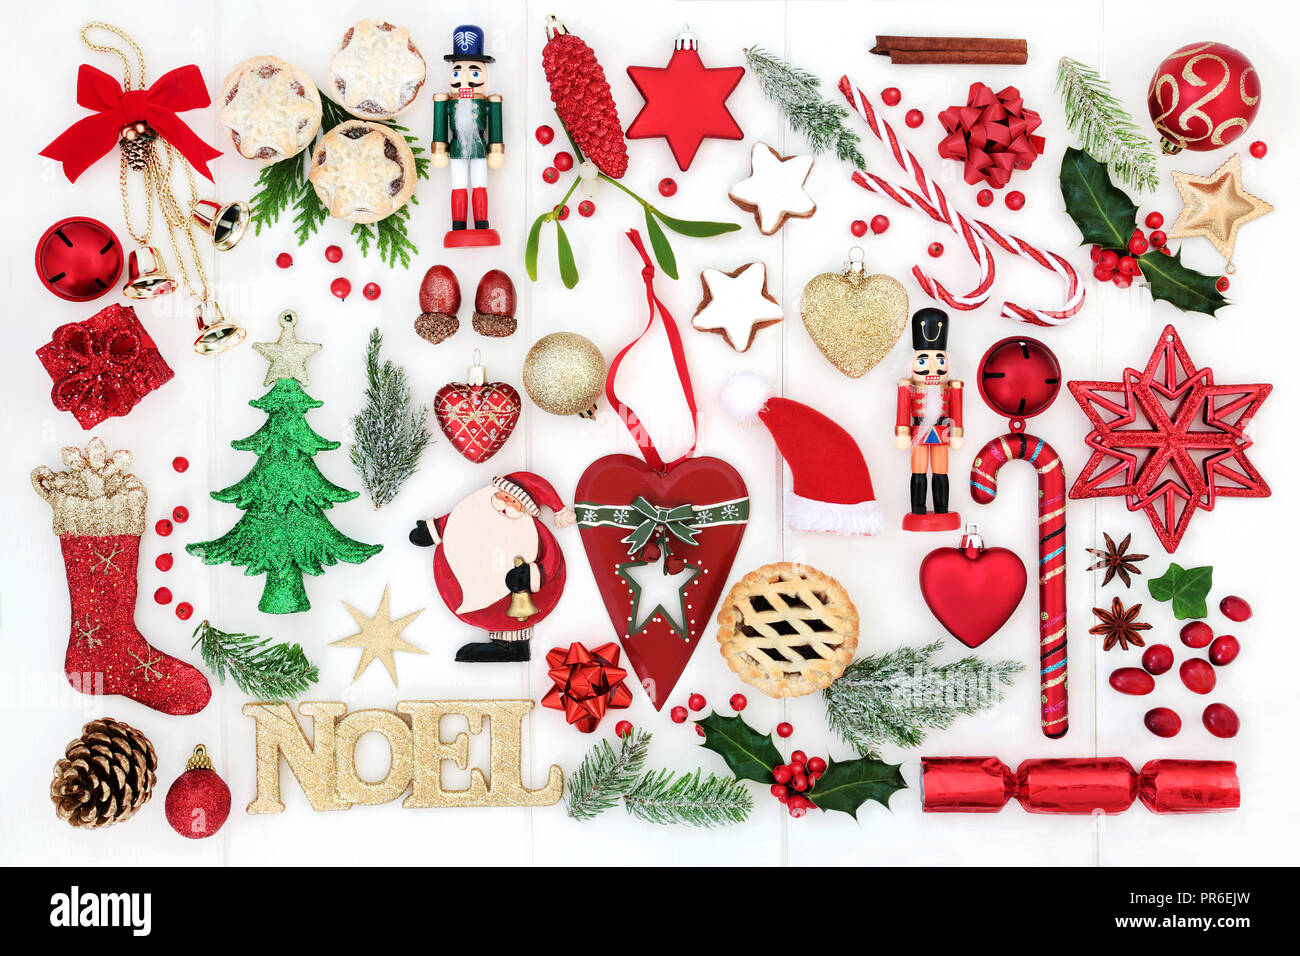 Christmas background with noel sign, retro and new bauble decorations, candy canes, mince pies, winter flora,  ribbons and bows on rustic white wood.  - Stock Image